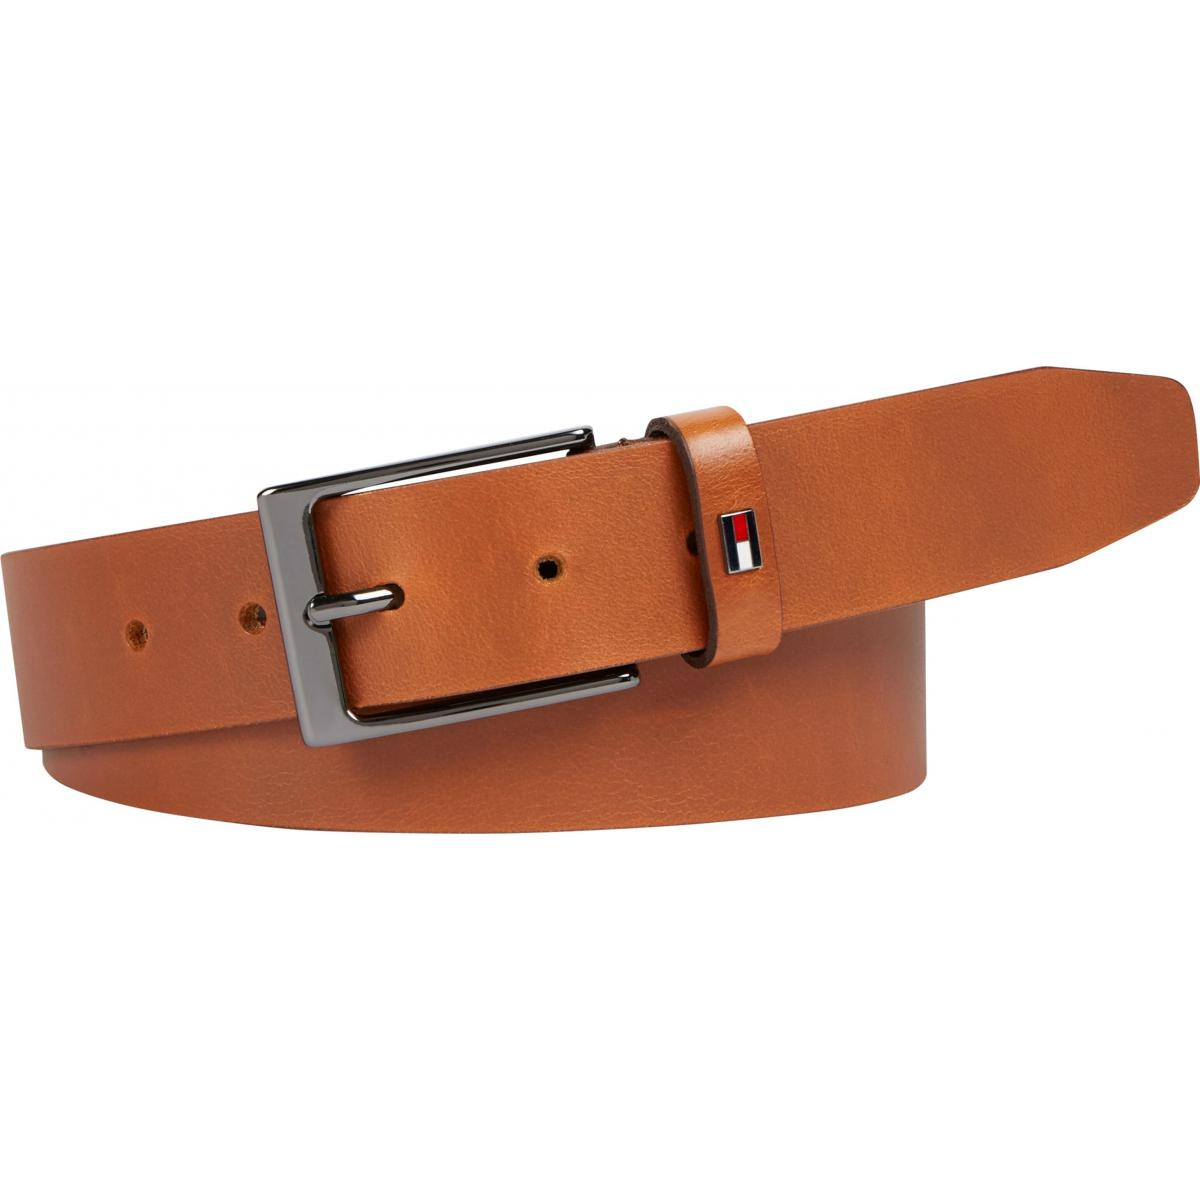 Ceinture Homme cuir marron - Tommy Hilfiger  Tommy Hilfiger Maroquinerie